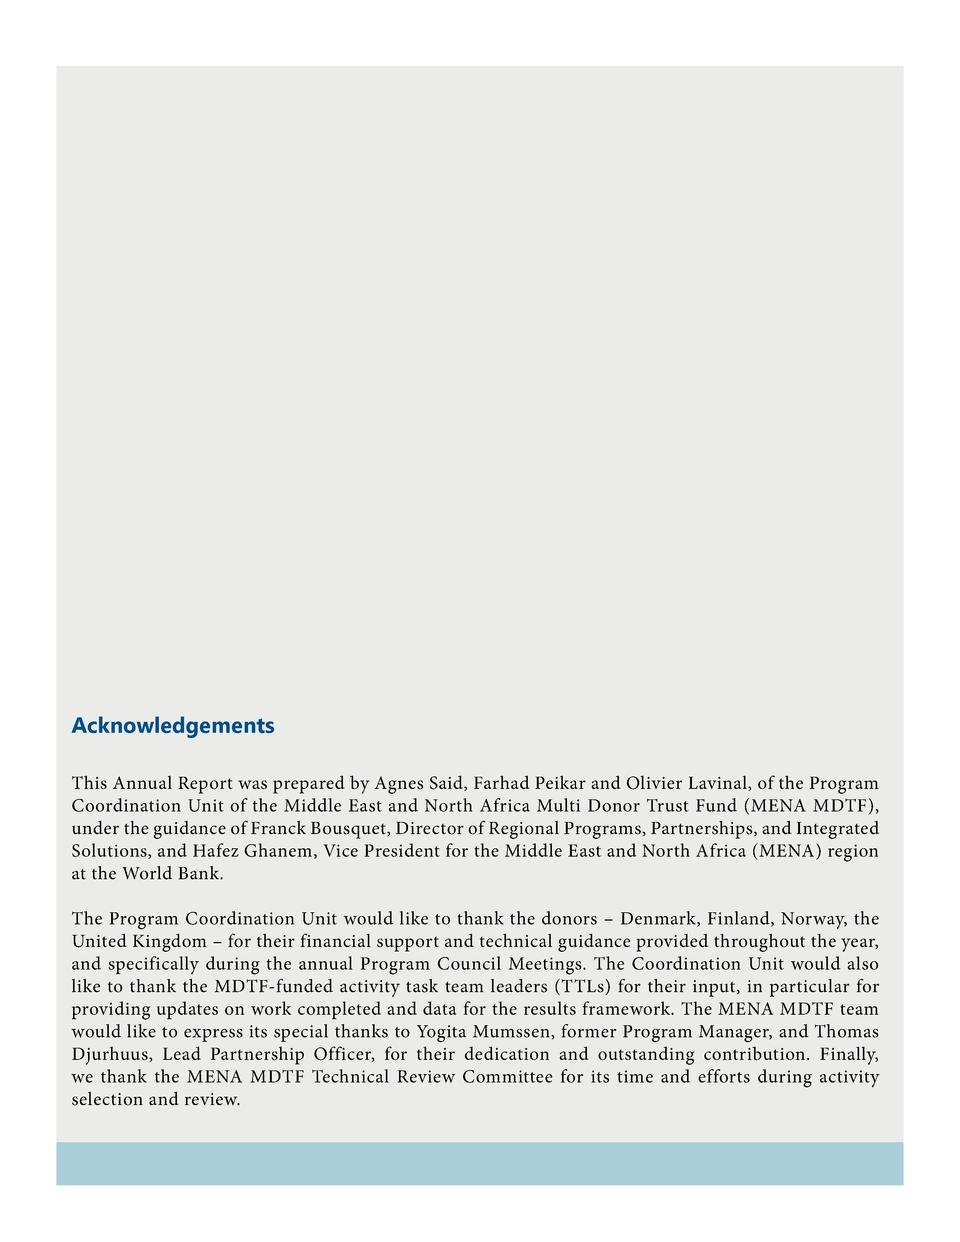 Acknowledgements This Annual Report was prepared by Agnes Said, Farhad Peikar and Olivier Lavinal, of the Program Coordina...